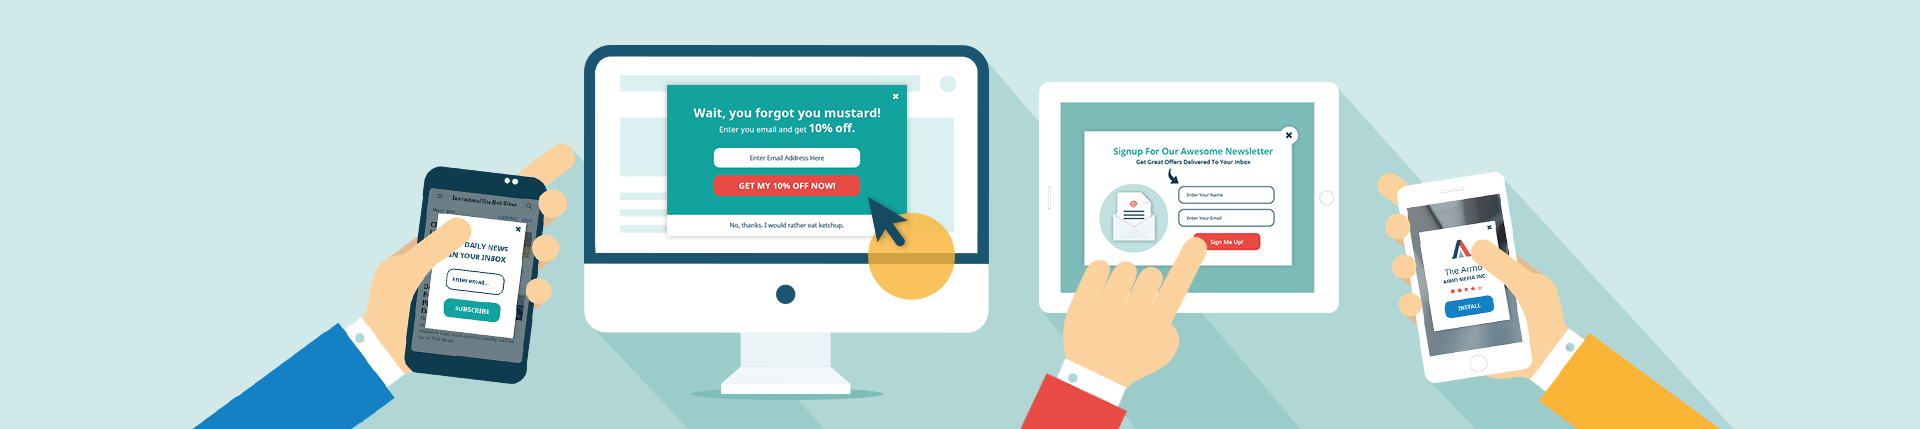 Manage Targeted Pop-ups and Banners Across Platforms and Devices